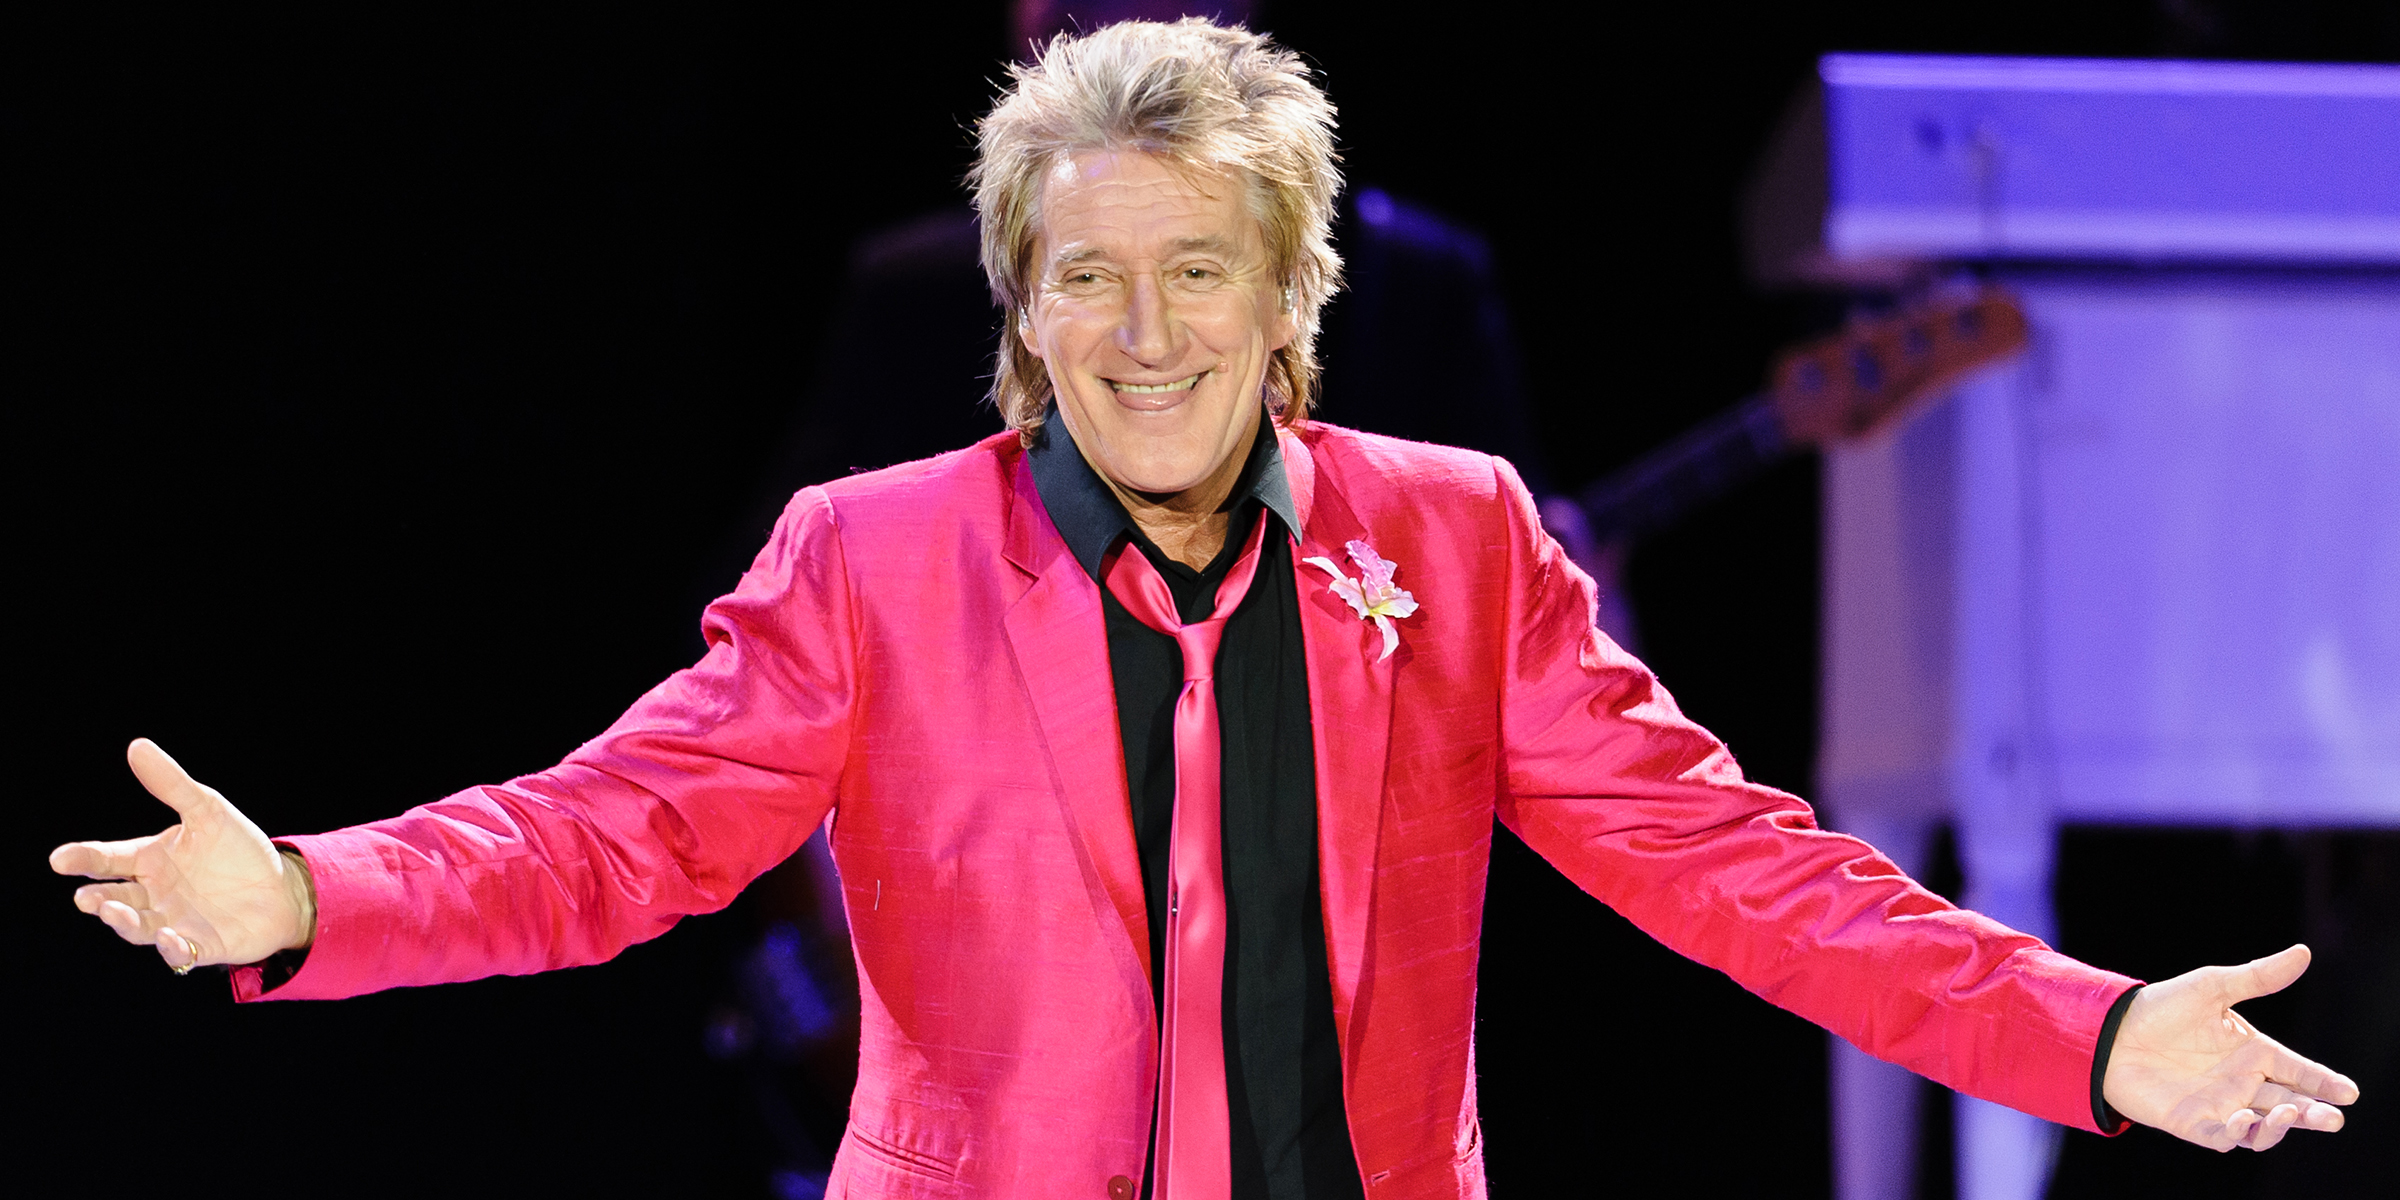 Rod Stewart reveals he had prostate cancer: 'I caught it early'